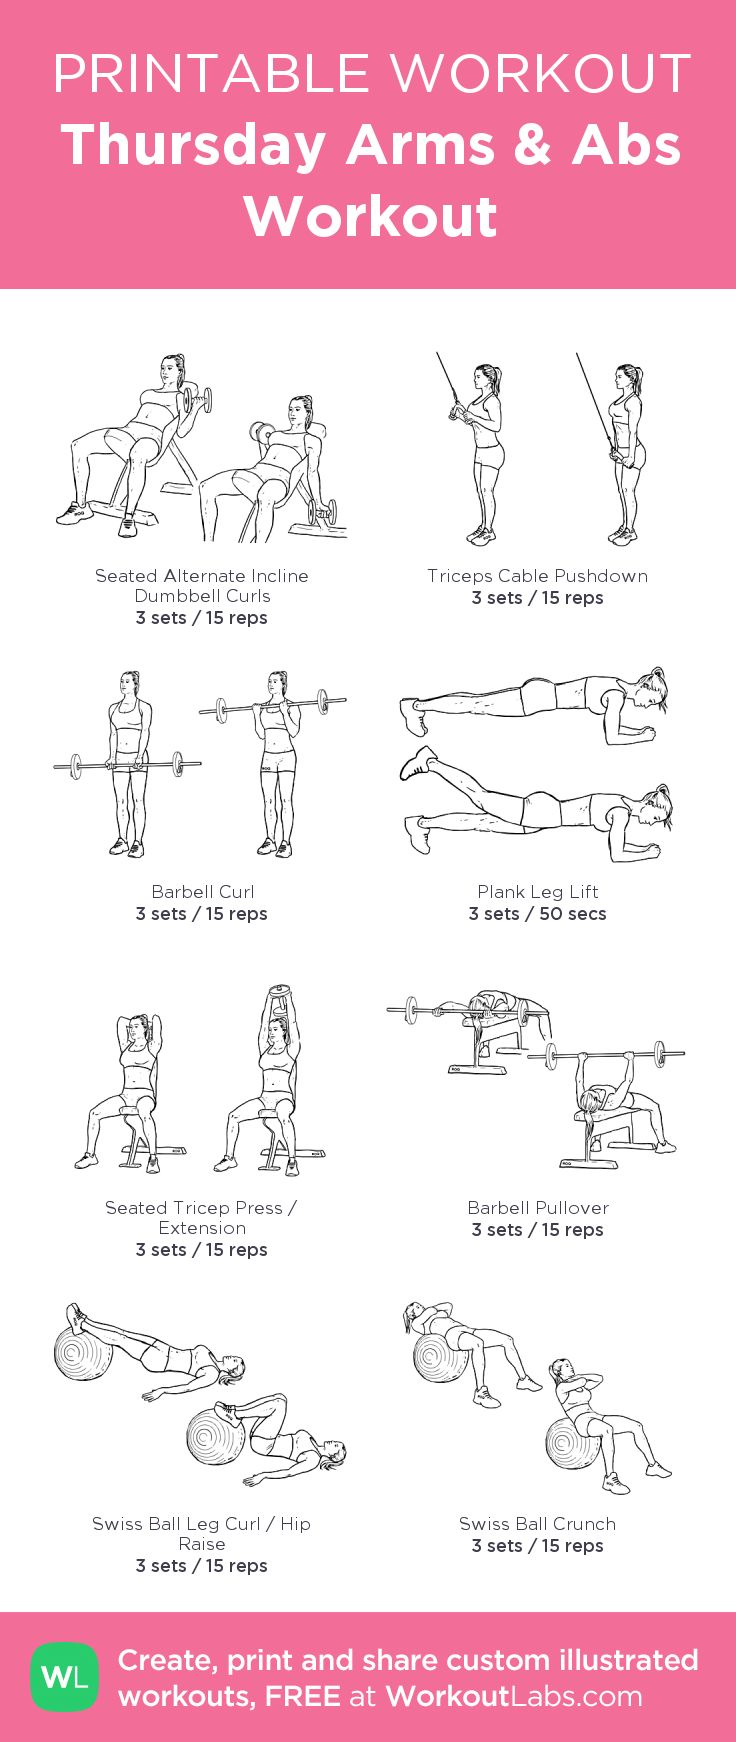 Thursday Arms Abs Workout: my custom printable workout by @WorkoutLabs…